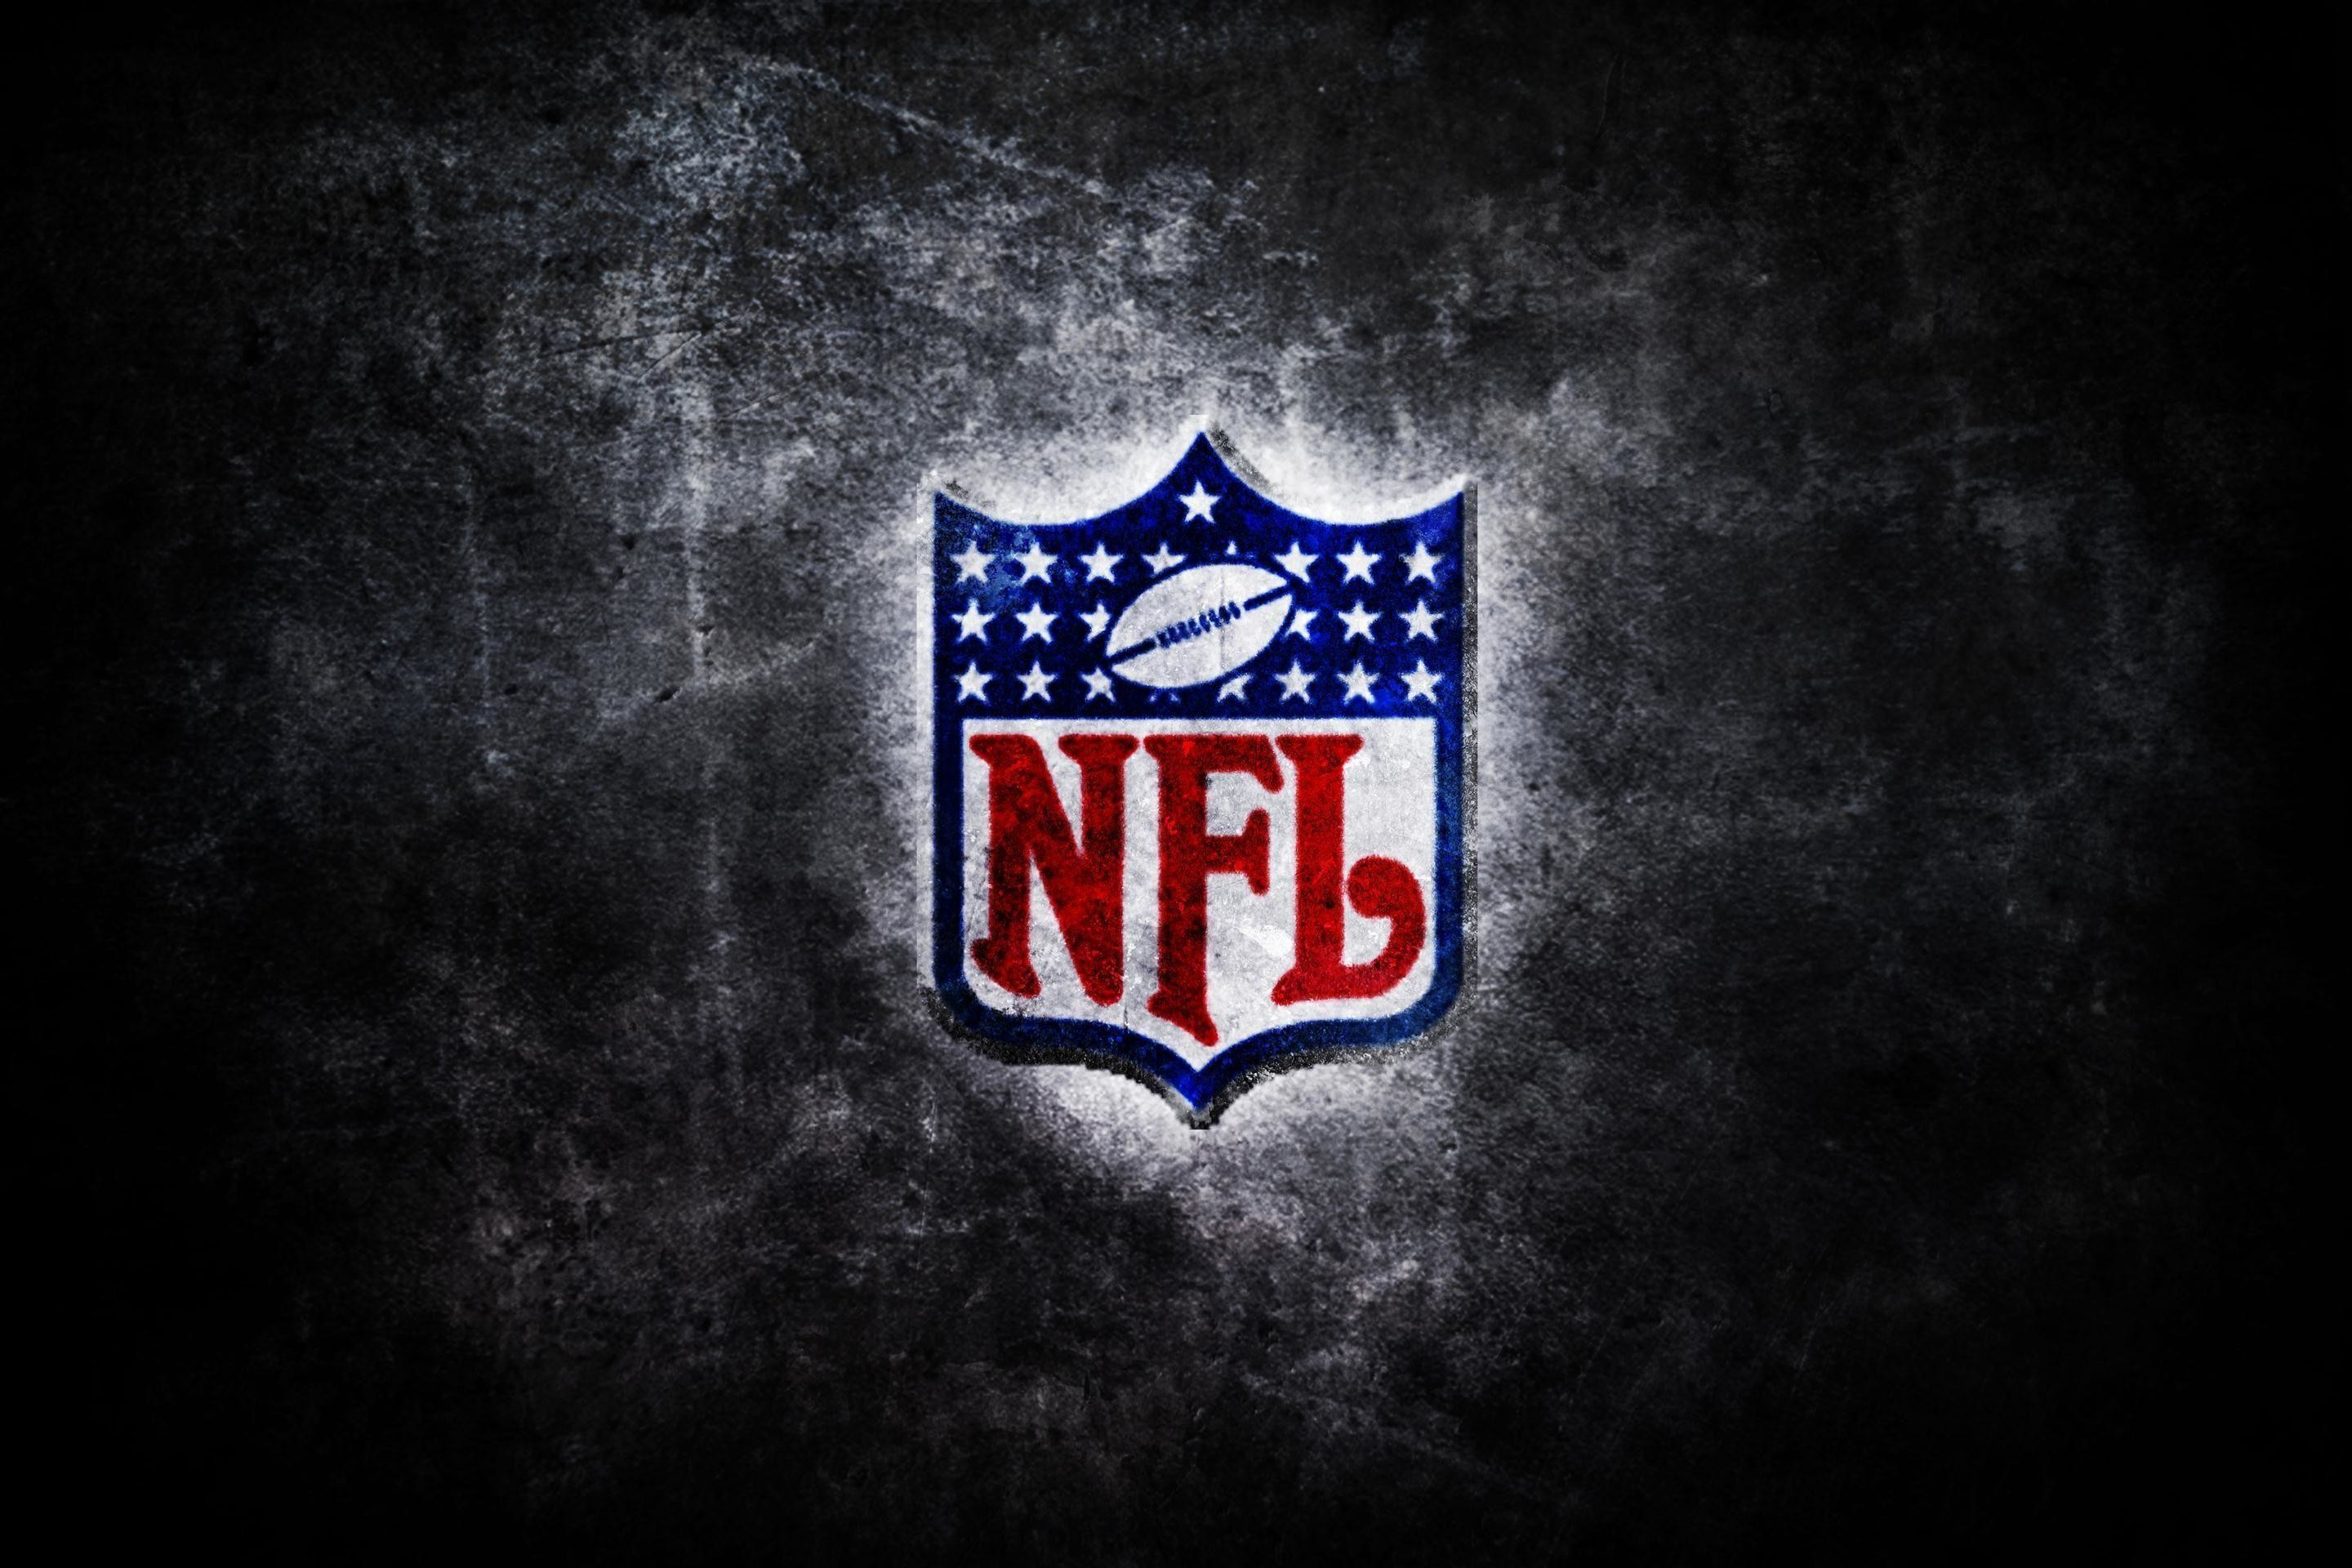 2880x1920 NFL 2014 Logo Wallpaper Wide or HD | Sports Wallpapers